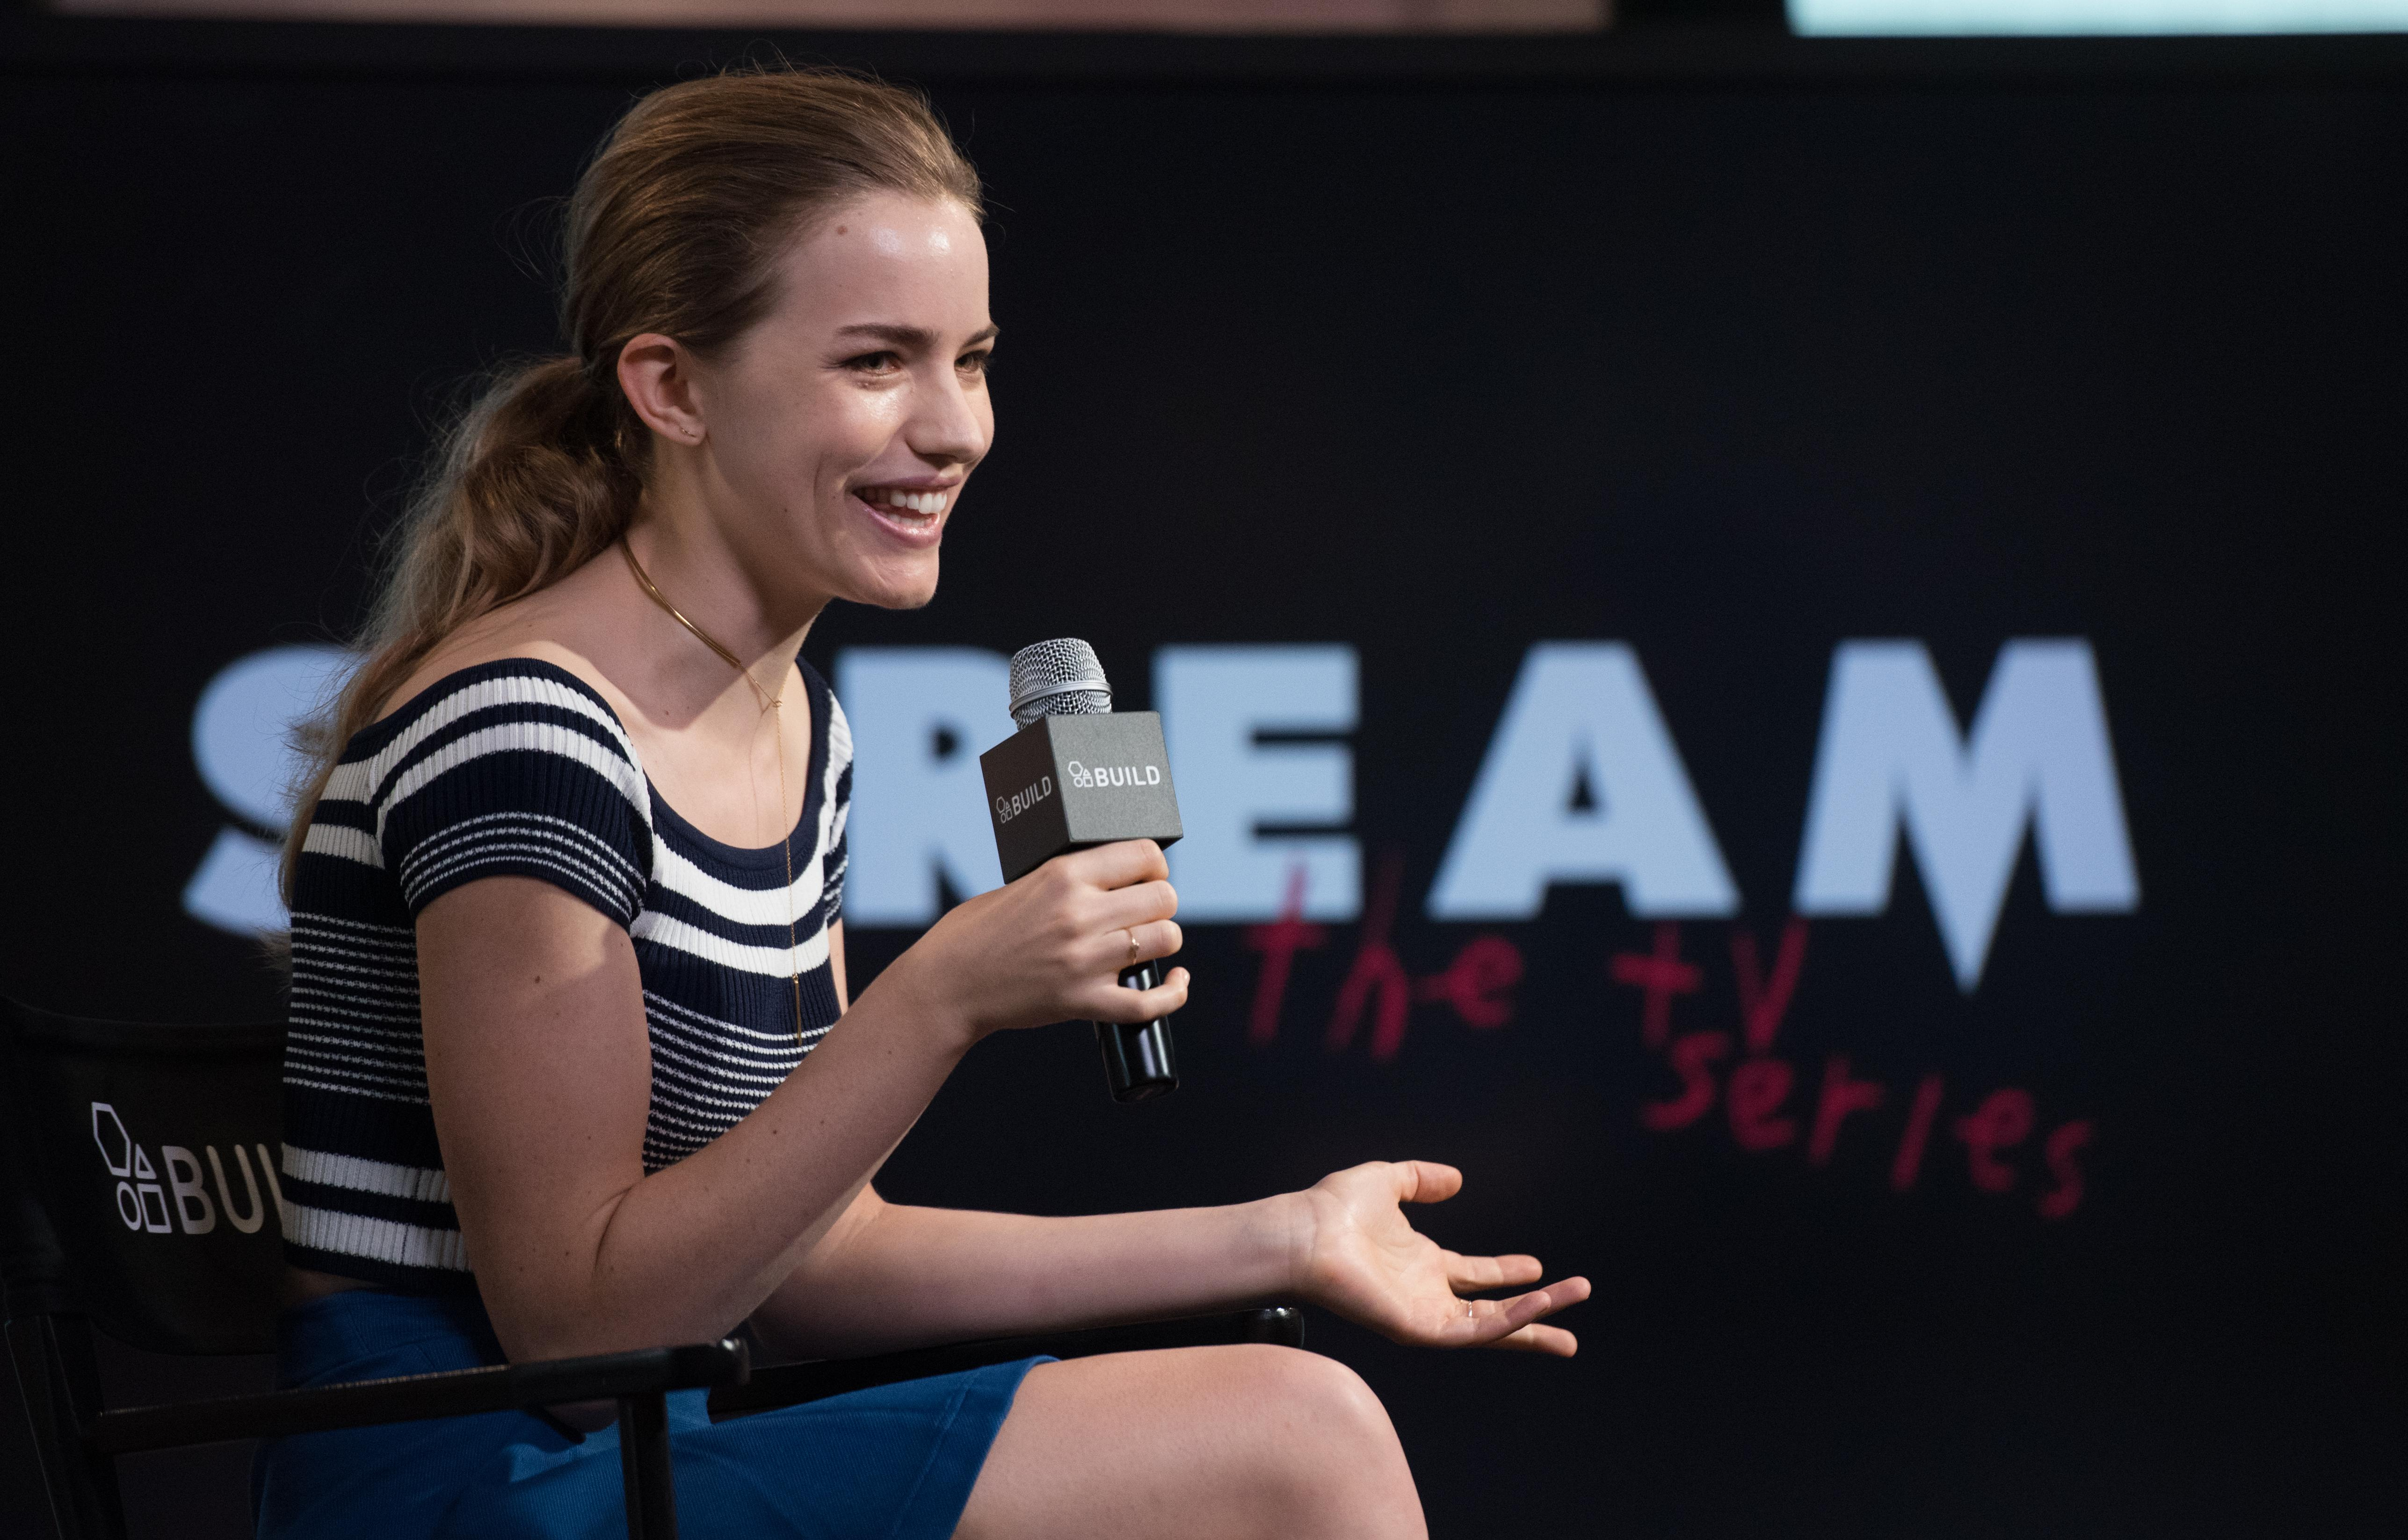 Willa fitzgerald dating after divorce